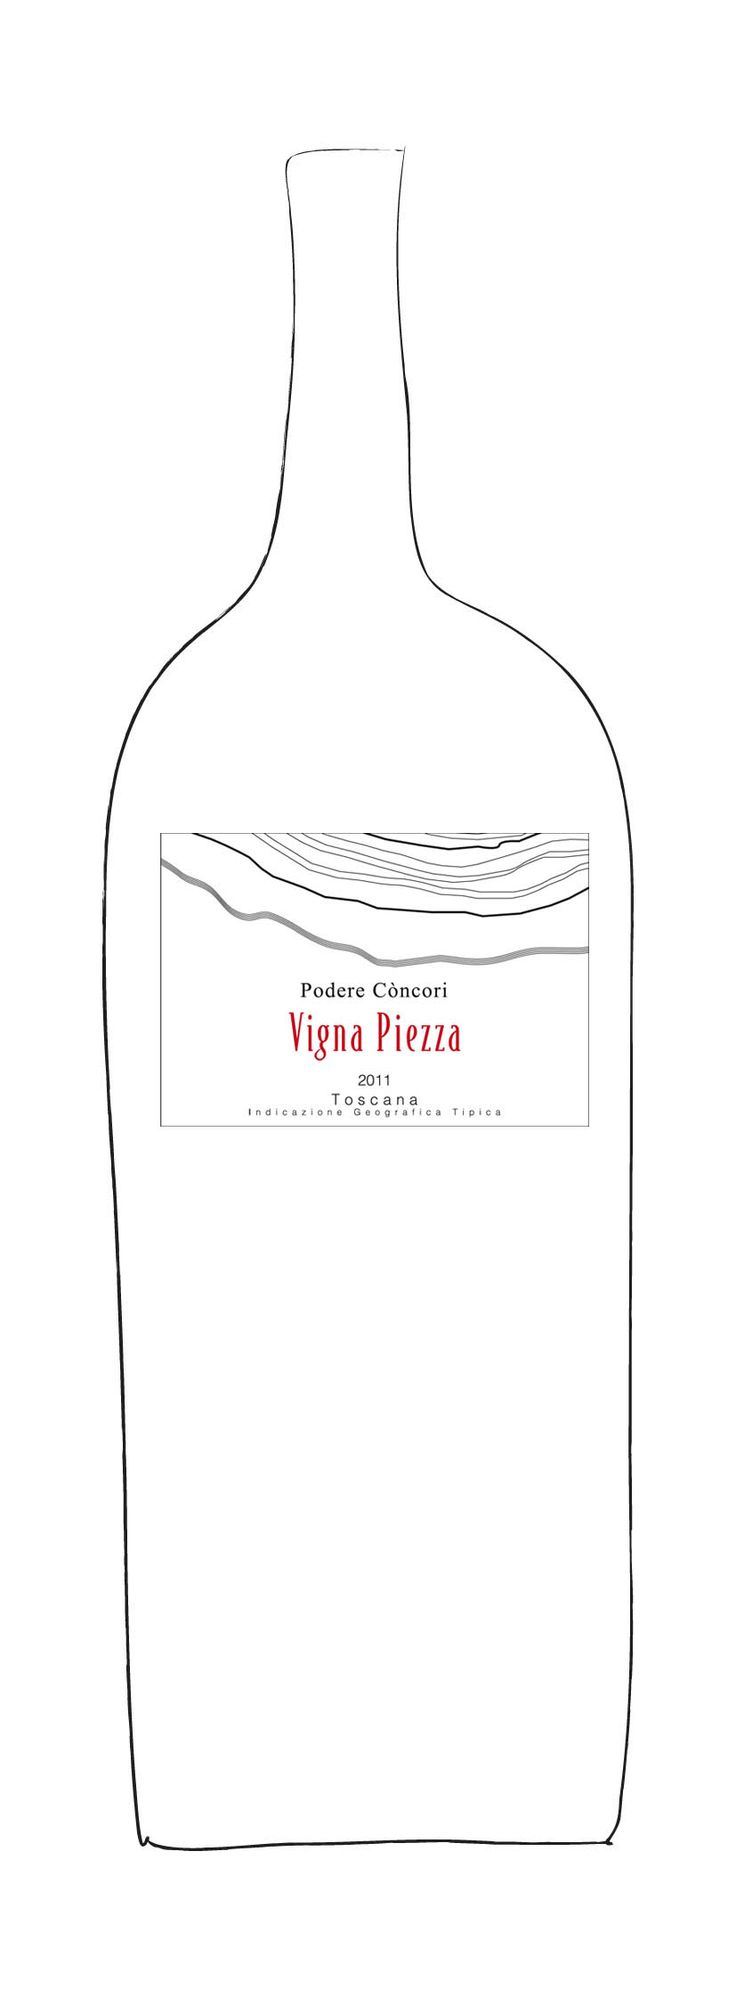 """Vigna Piezza 2011, Podere Concori - """"Vigna Piezza, historically the most important vineyard of Podere Concori, is marked by its steep slopes and exceptional microclimate. The Serchio River nearby has an essential mitigating role affecting the area's ventilation and creating a perfect environment for the grapes' health and its aromatic evolution. Podere Concori's Premier Cru, Vigna Piezza, is only made in exceptional vintages. Grape varieties: Syrah."""""""